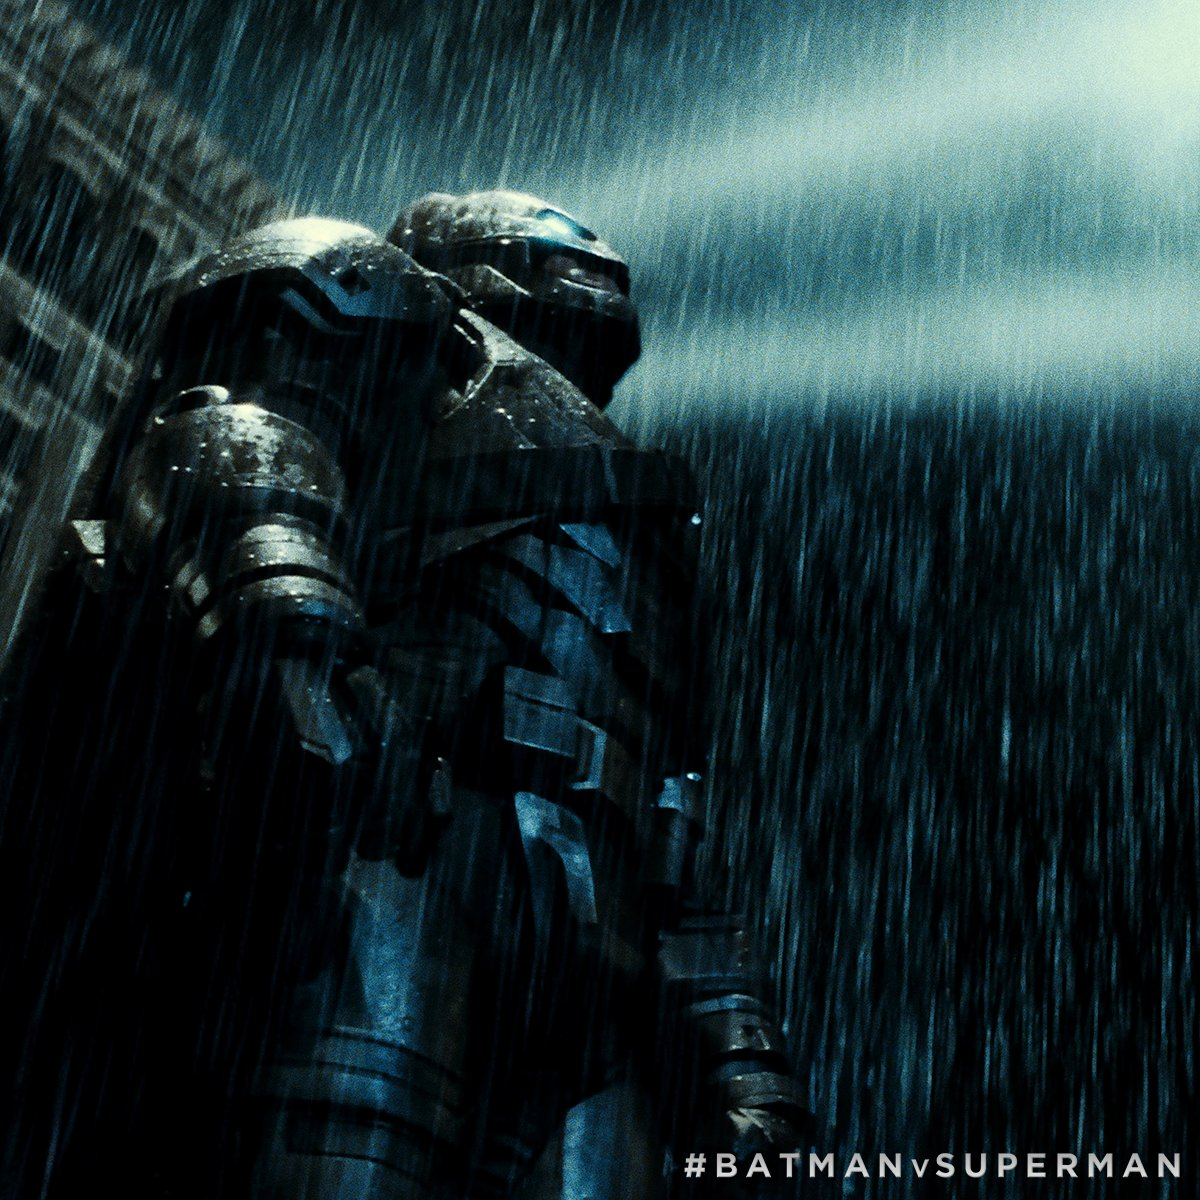 'Batman v Superman' will be one of the longest superhero films ever